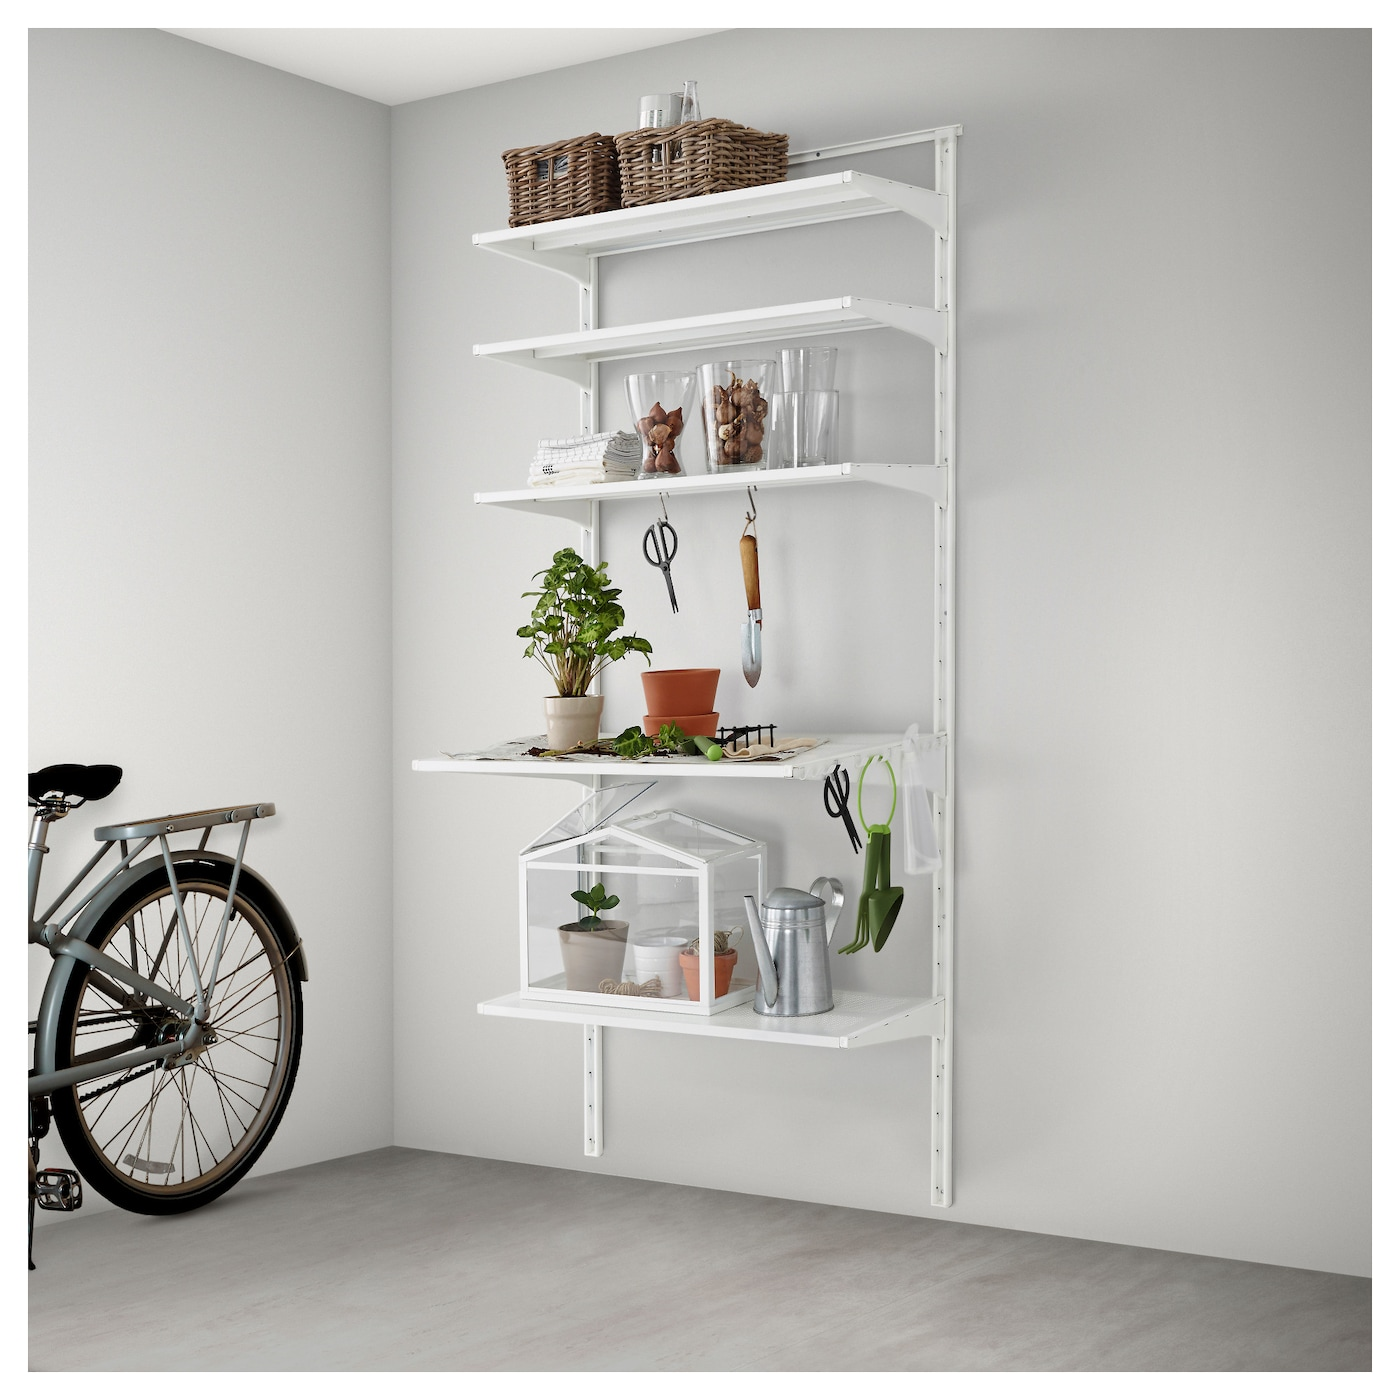 IKEA ALGOT wall upright/shelf/hook Can also be used in bathrooms and other damp areas indoors.